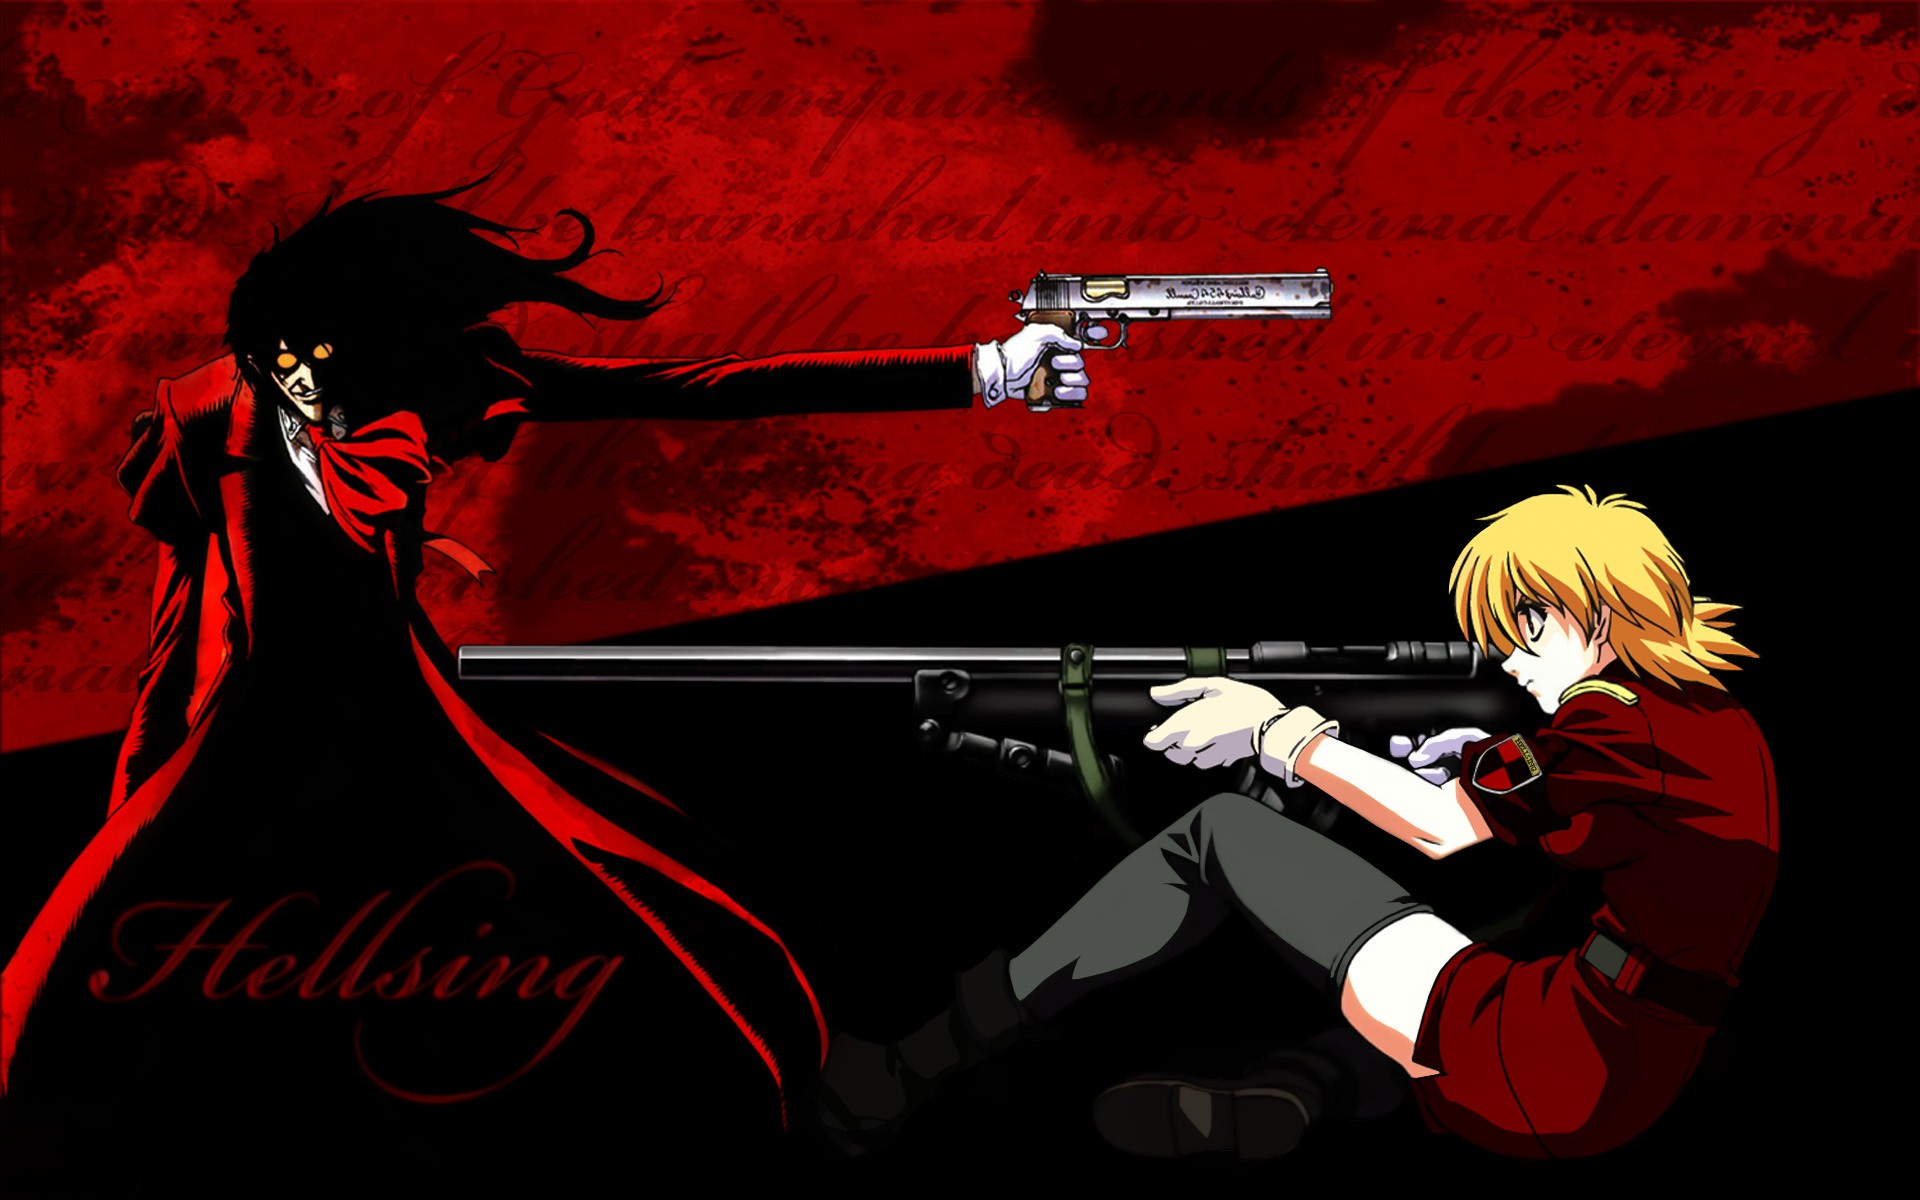 Hellsing ultimate wallpaper download free high - Anime hellsing wallpaper ...